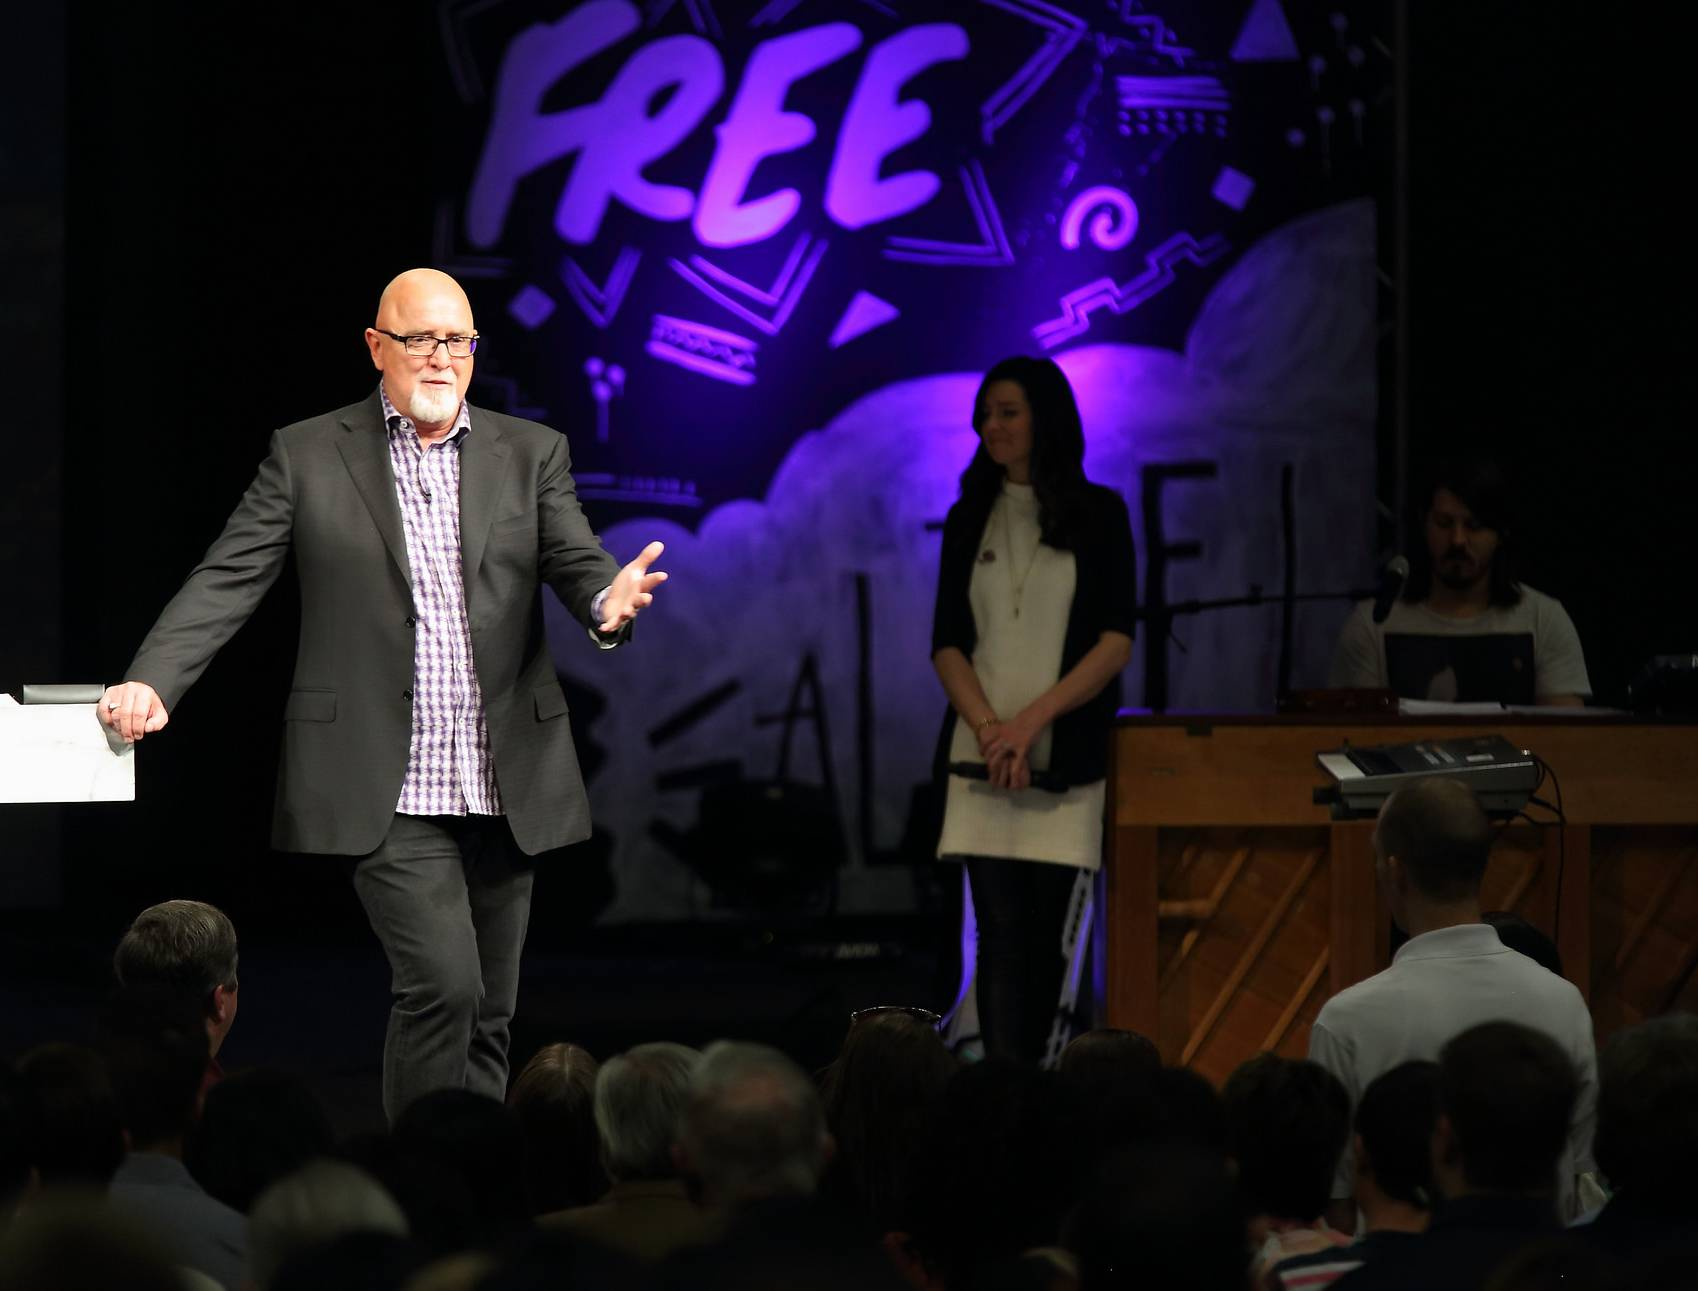 Harvest Bible Chapel pastor MacDonald taking sabbatical; elders to begin 'peacemaking'